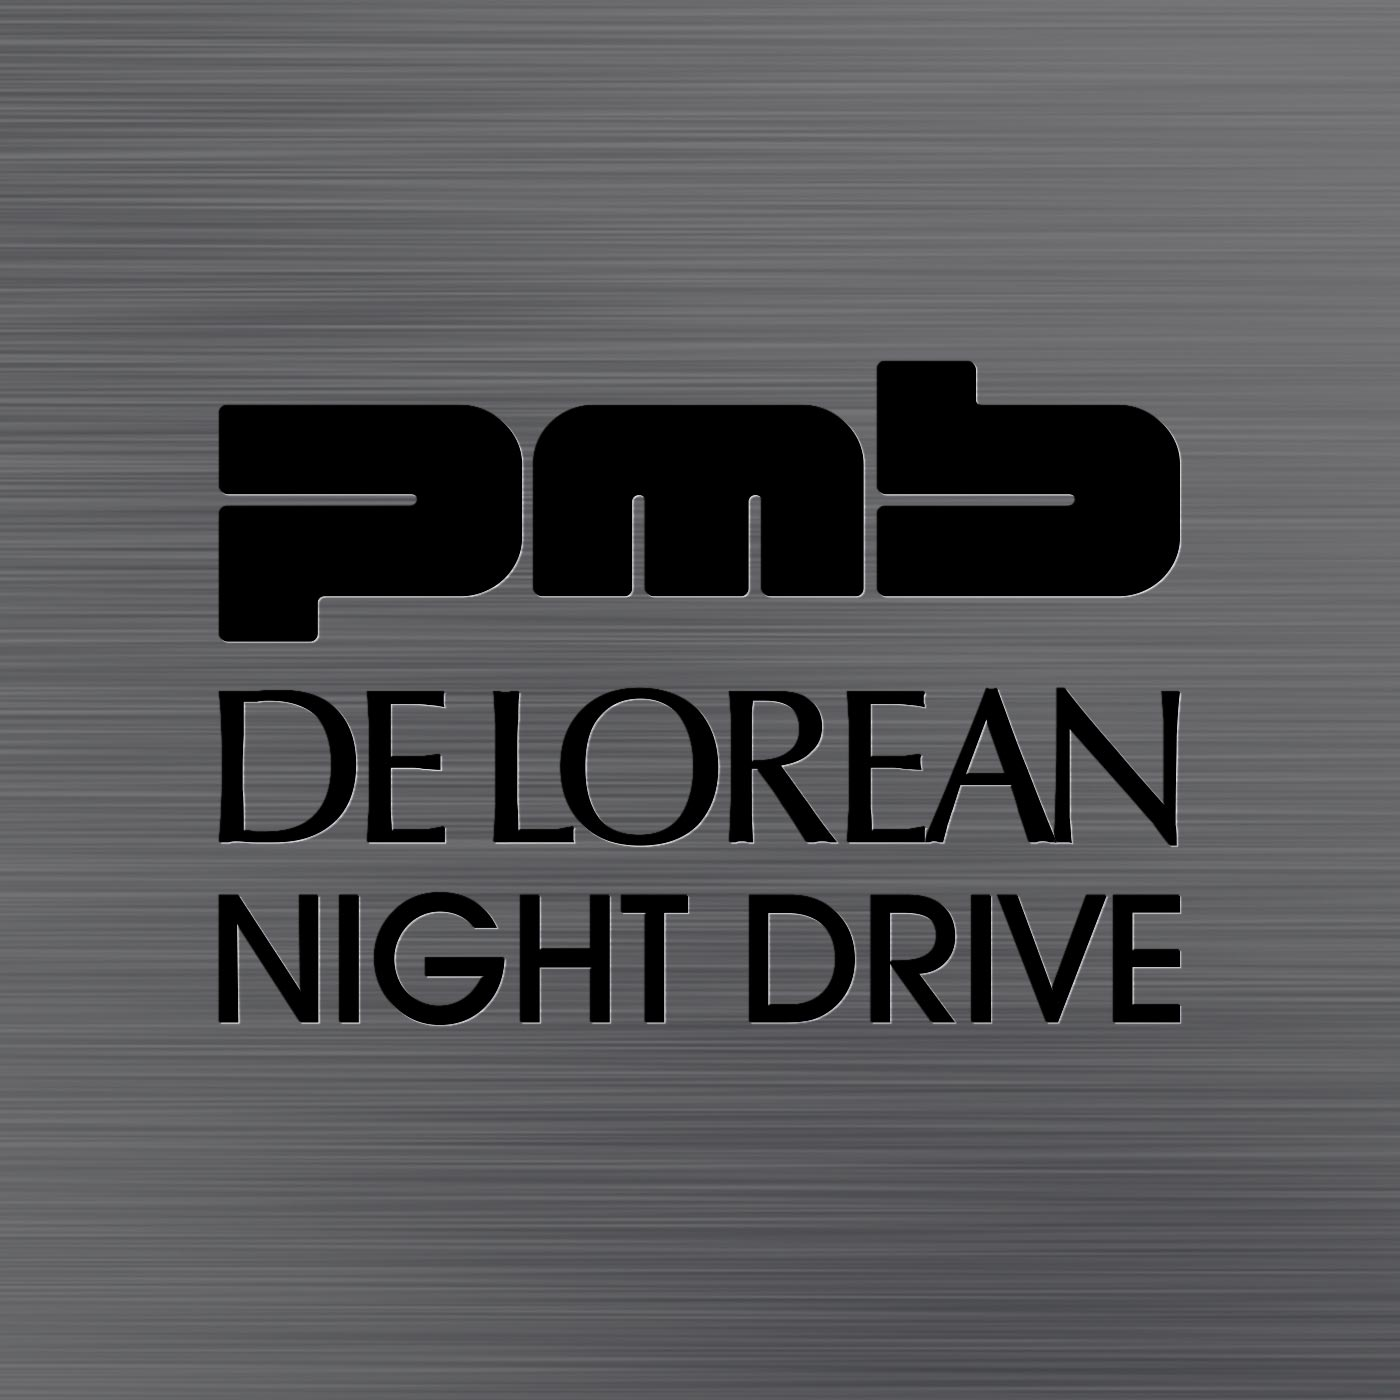 PMB265 Delorean Night Drive